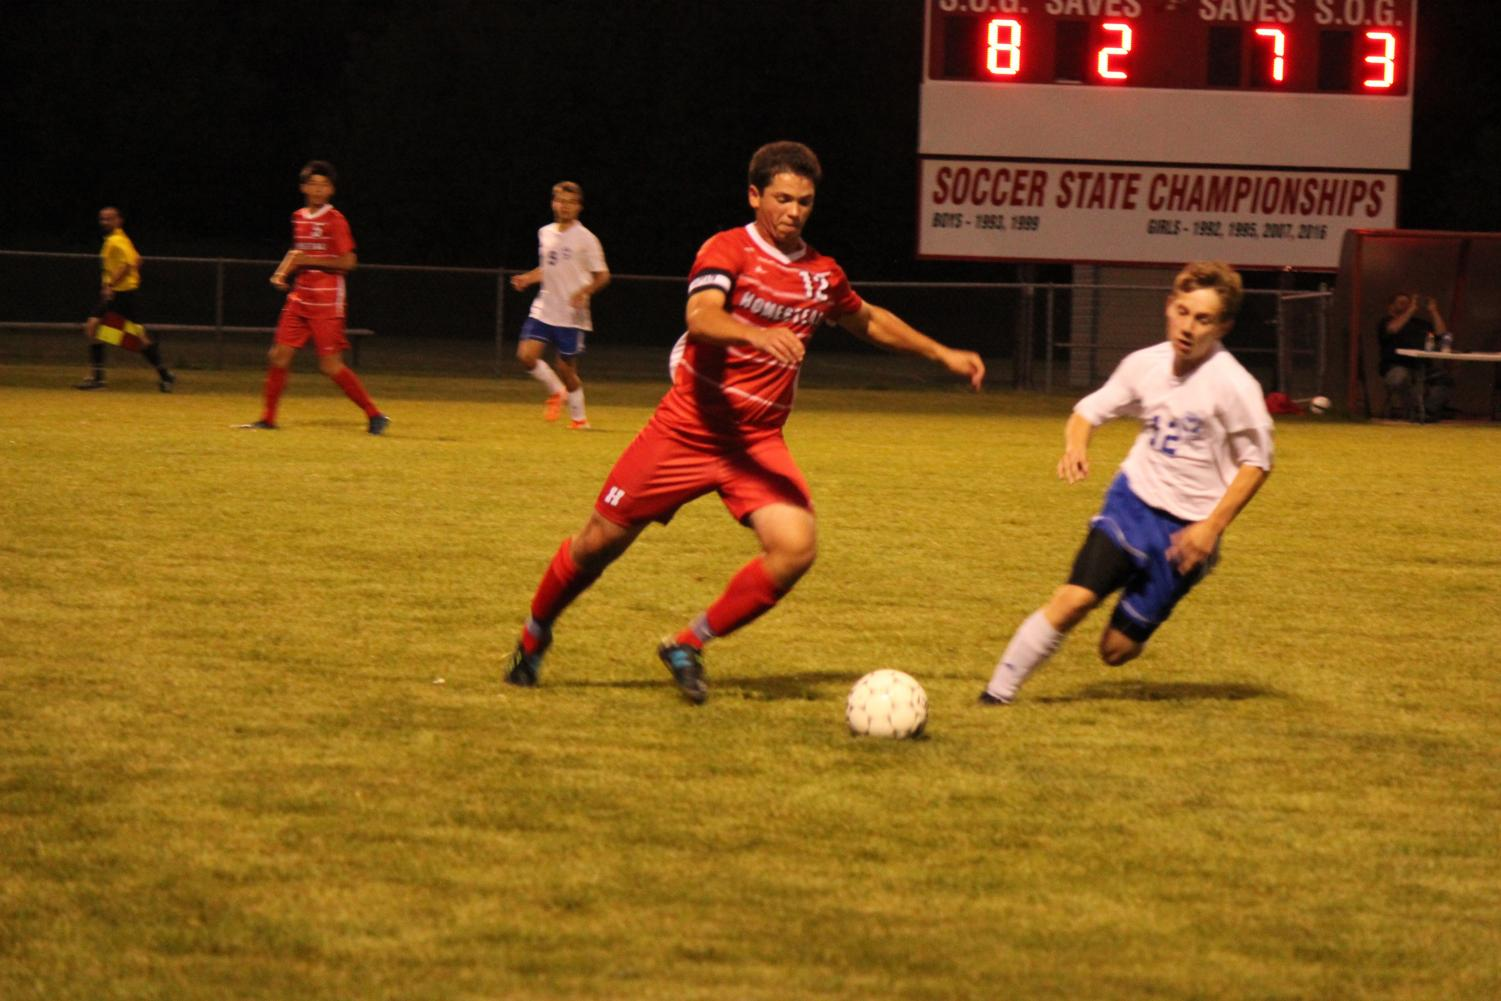 Josh Teplin, senior, dribbles the ball past his opponent during a game earlier in the season.